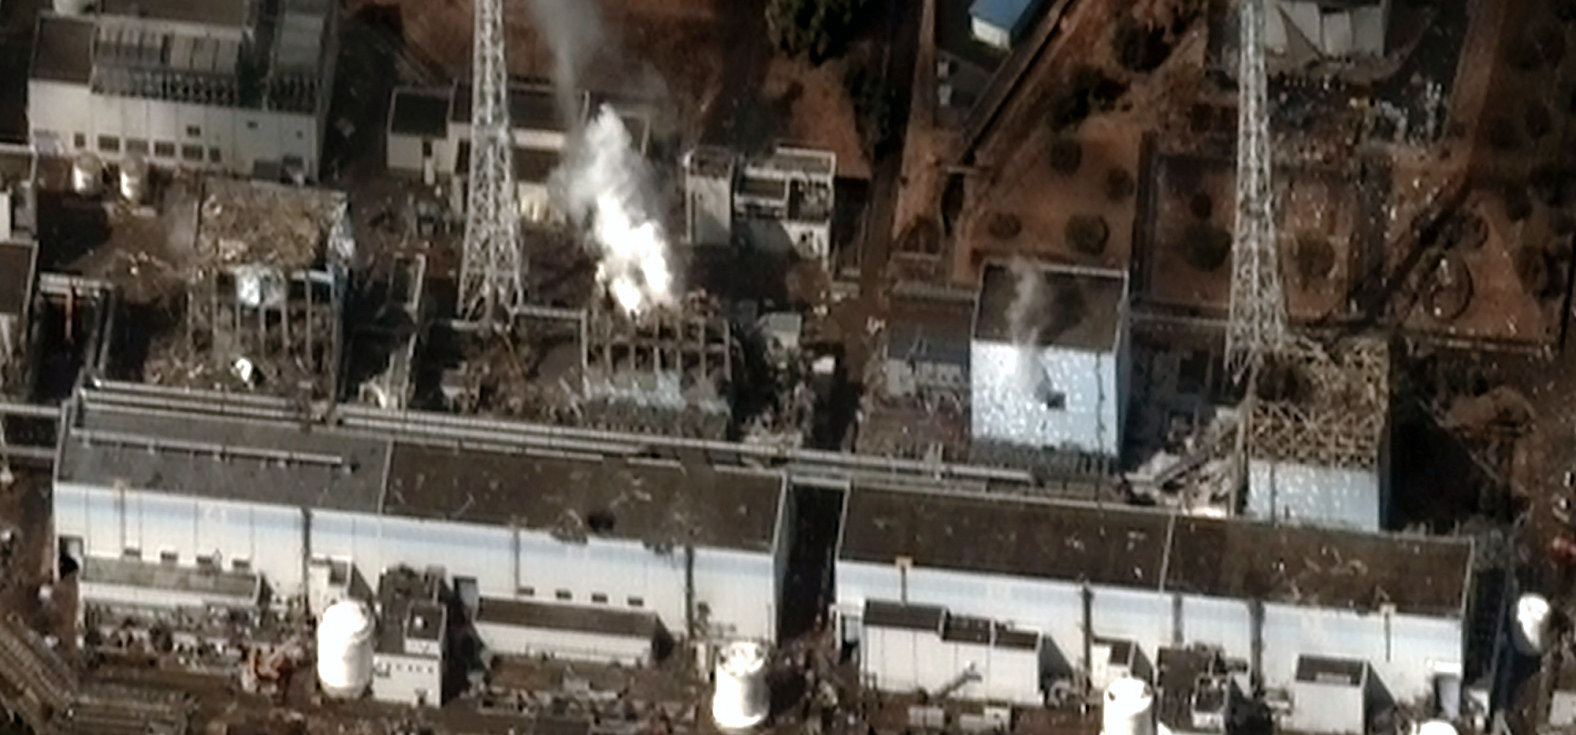 Fukushima reactor after the 2011 earthquake. Photo courtesy of Digital Globe via Wikimedia Commons.